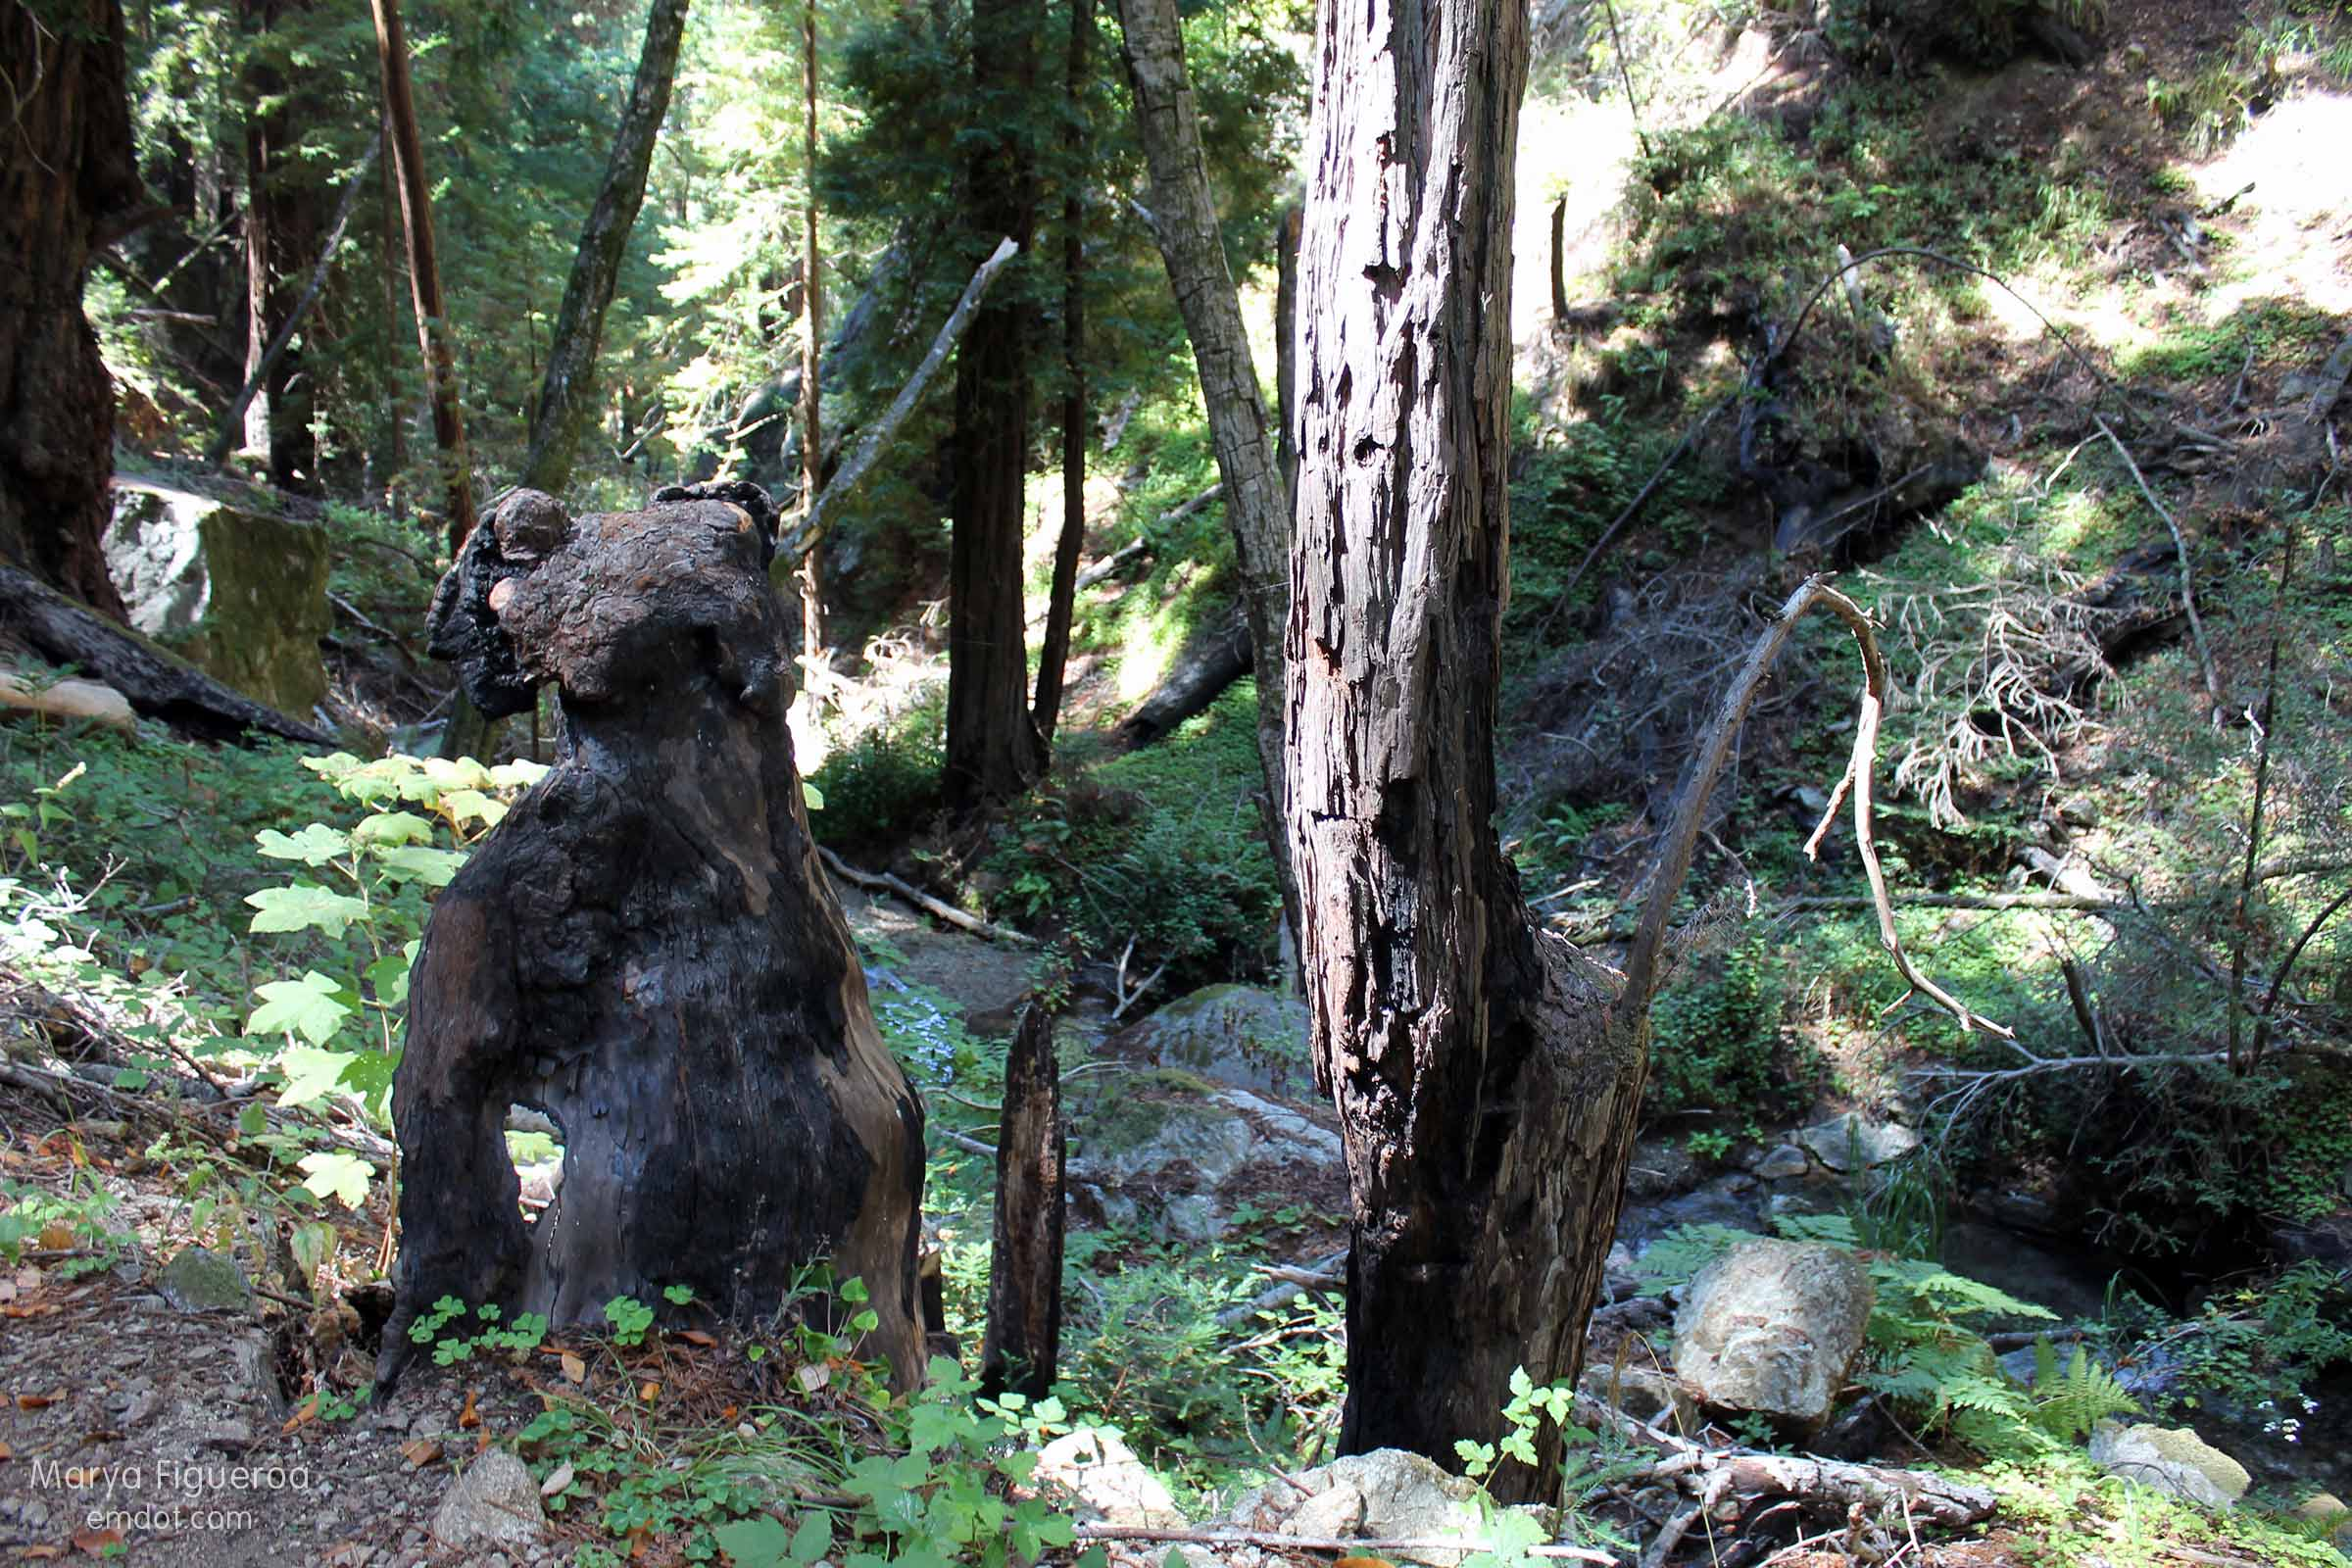 another view of the bear